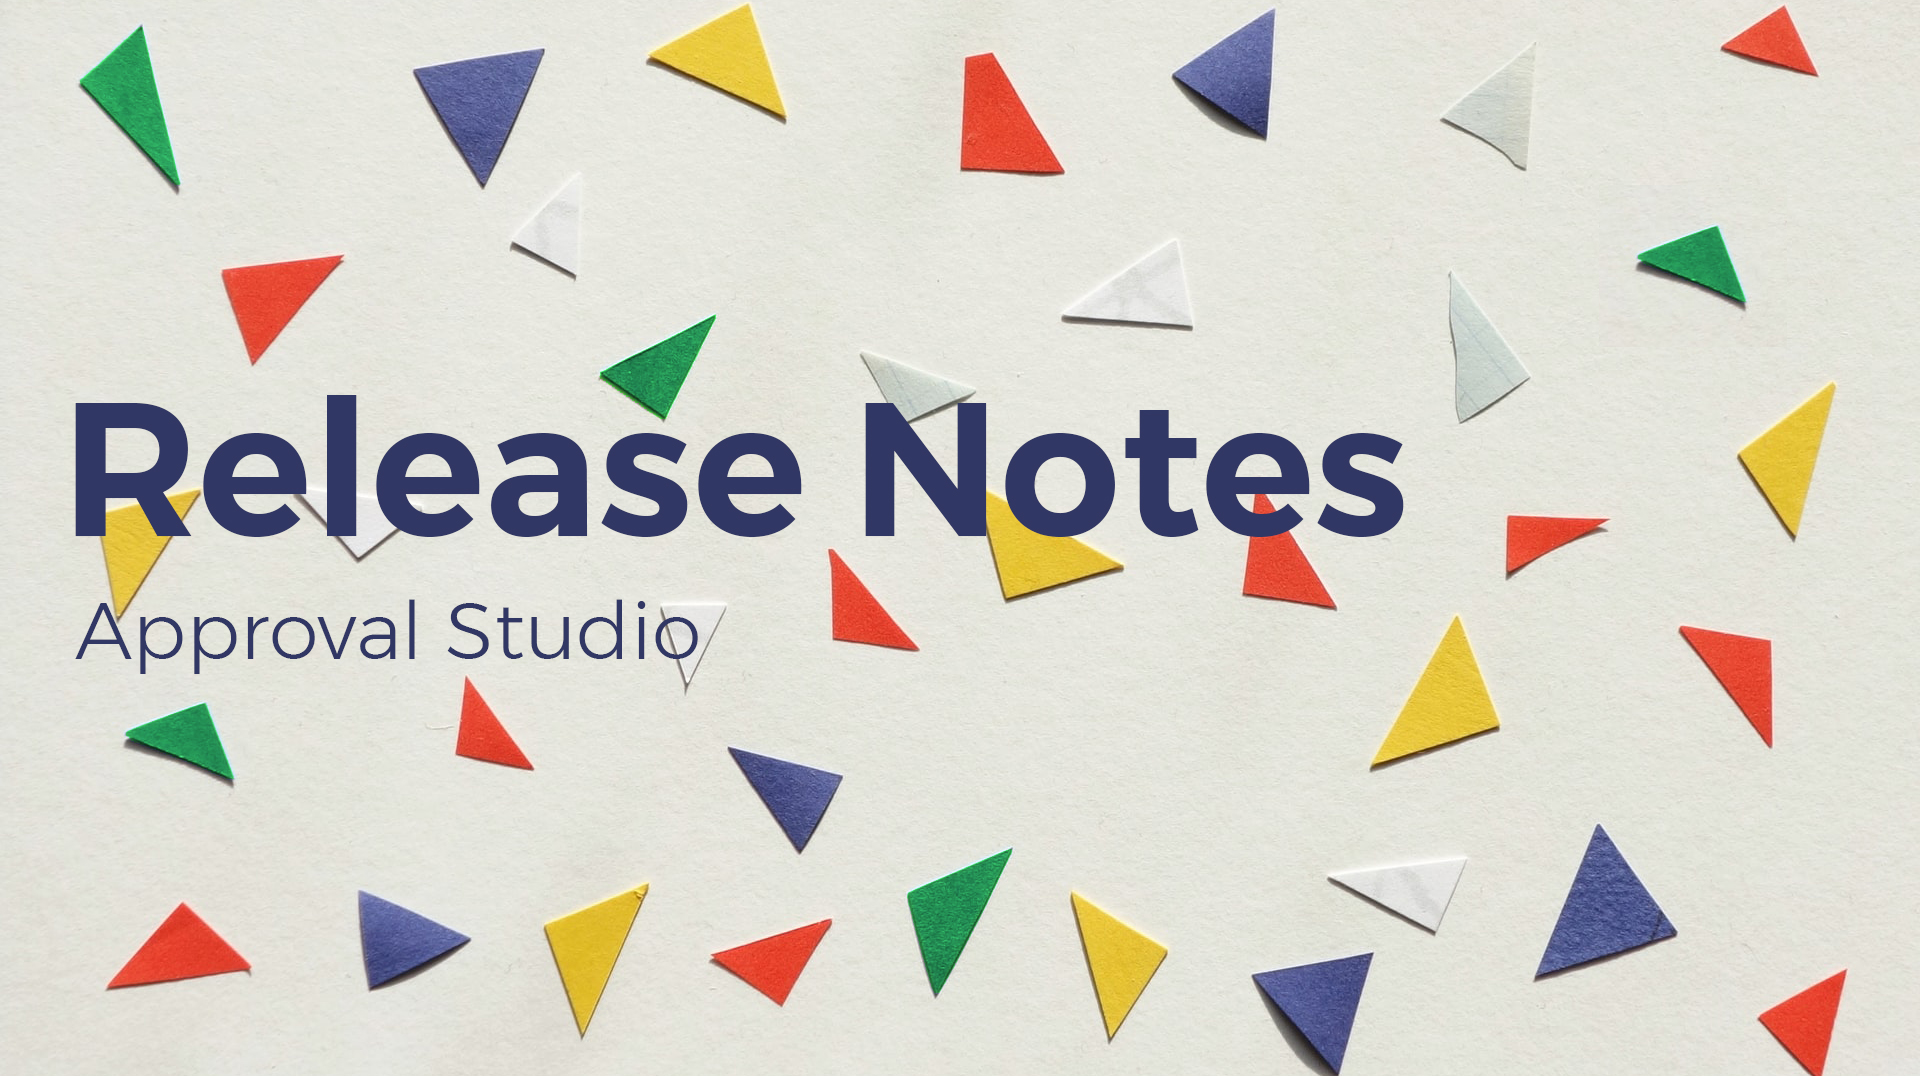 Release Notes Approval Studio